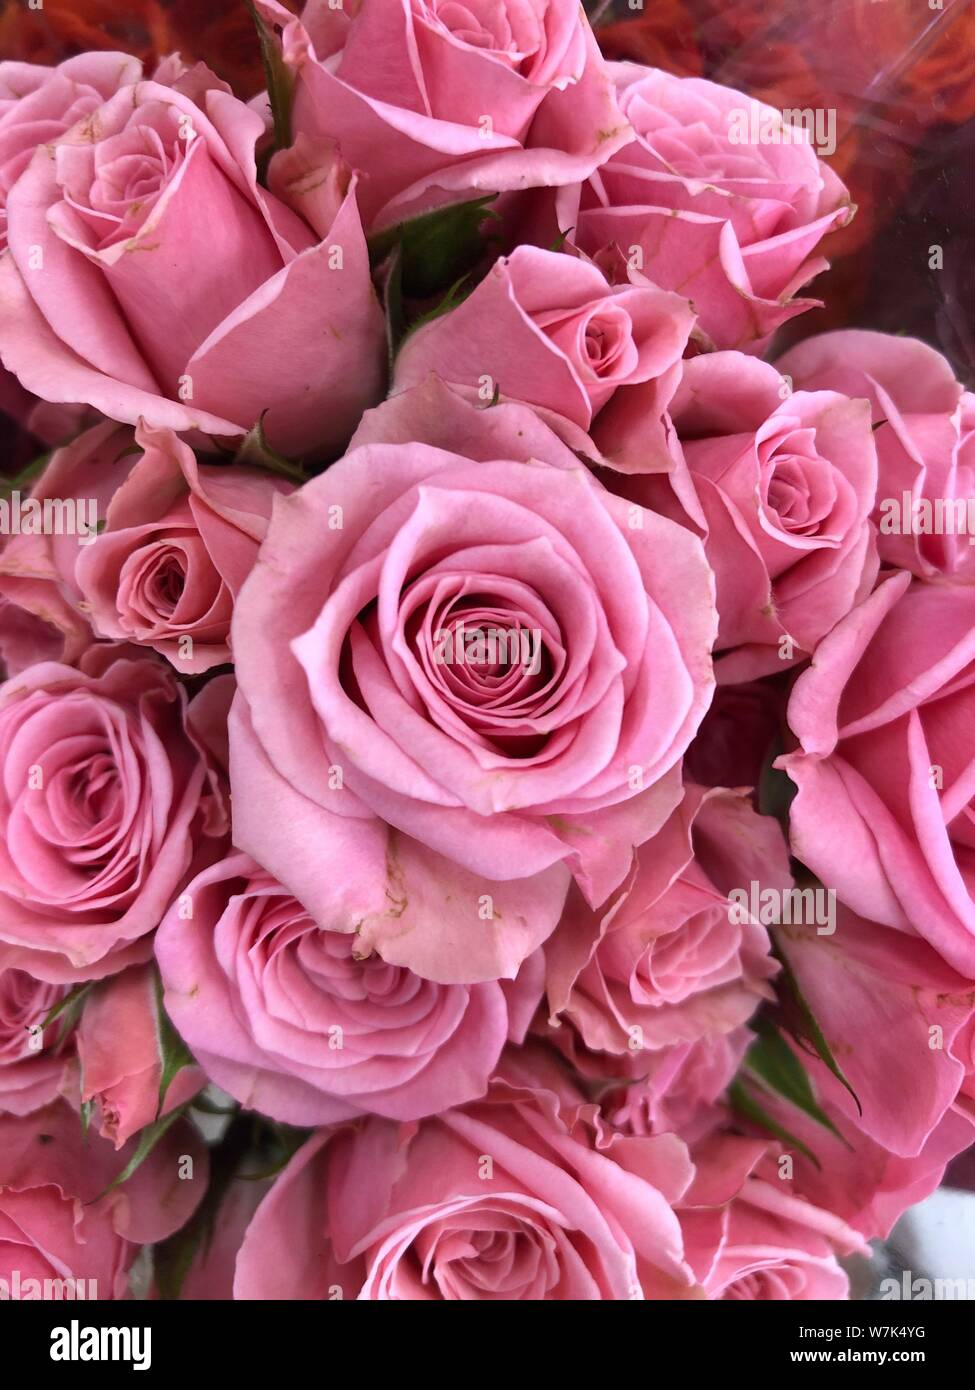 Pink Roses Background Beautiful Flowers Wallpaper Crop Image For